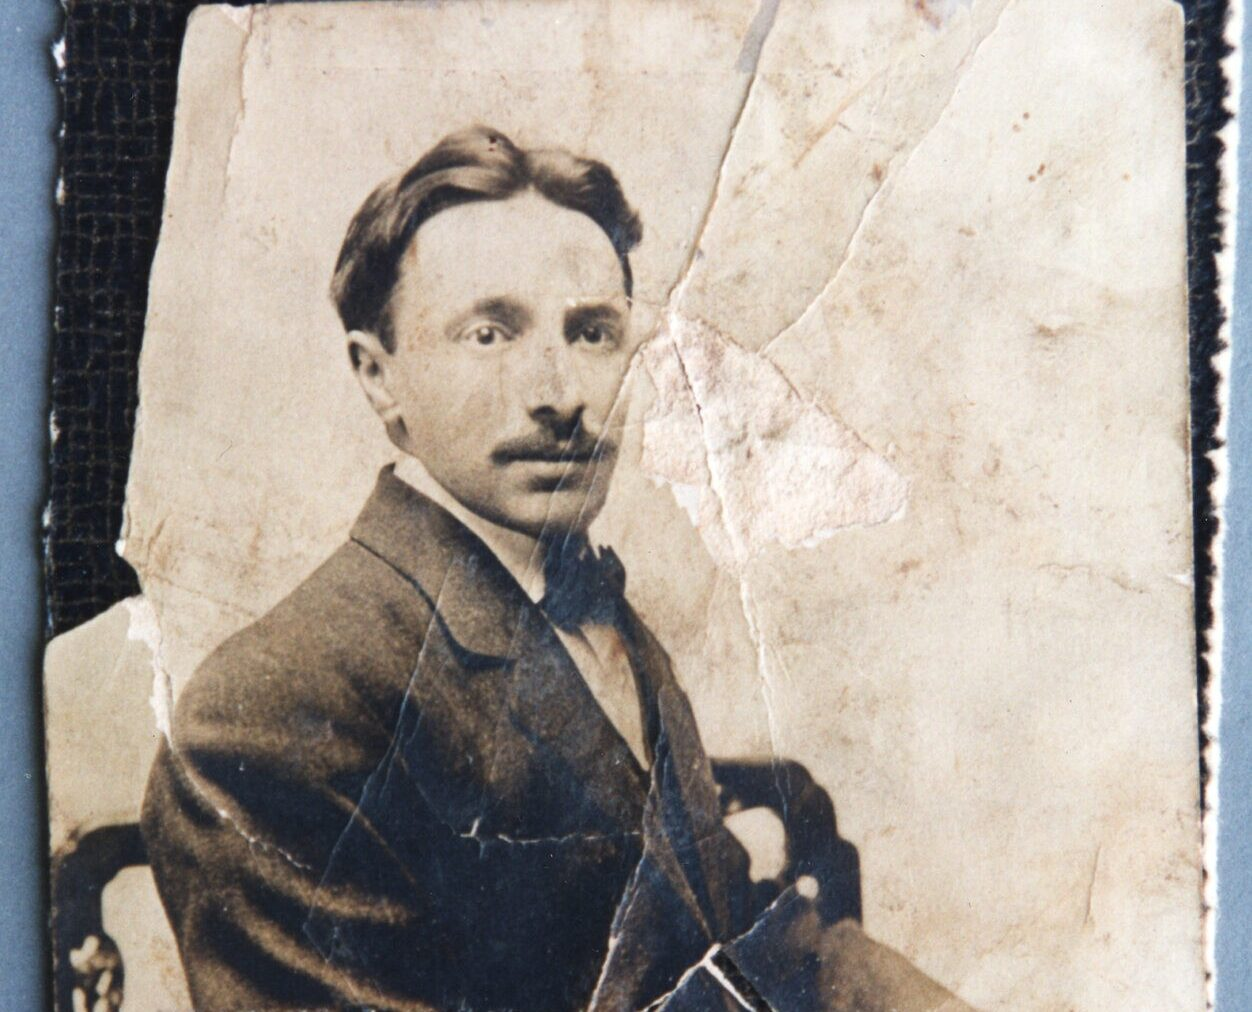 Old, weathered photo of an adult man with a light skin tone with his hair in a middle-part, a mustache, a bowtie and suit, and an open yet neutral expression